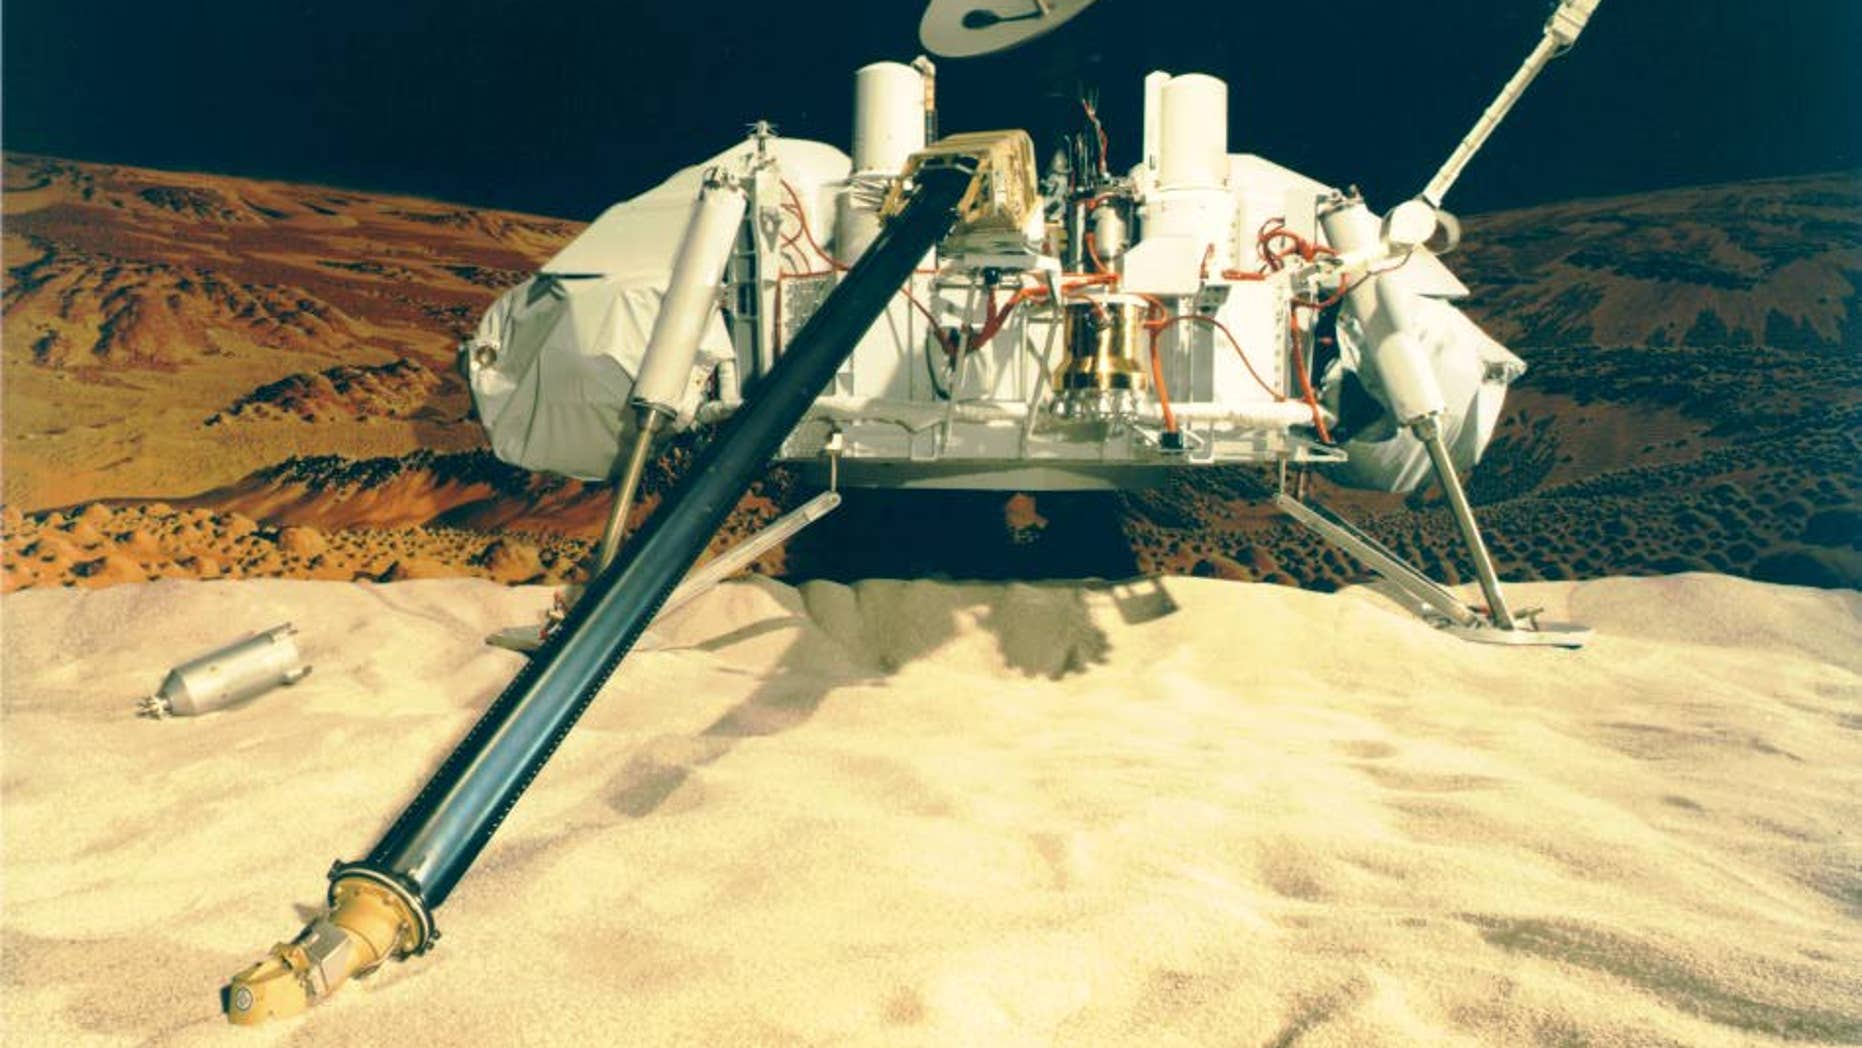 NASA's twin Viking landers touched down on Mars in 1976 to hunt for signs of life on the Red Planet. Forty years later, scientists are still arguing about what the landers' observations mean.